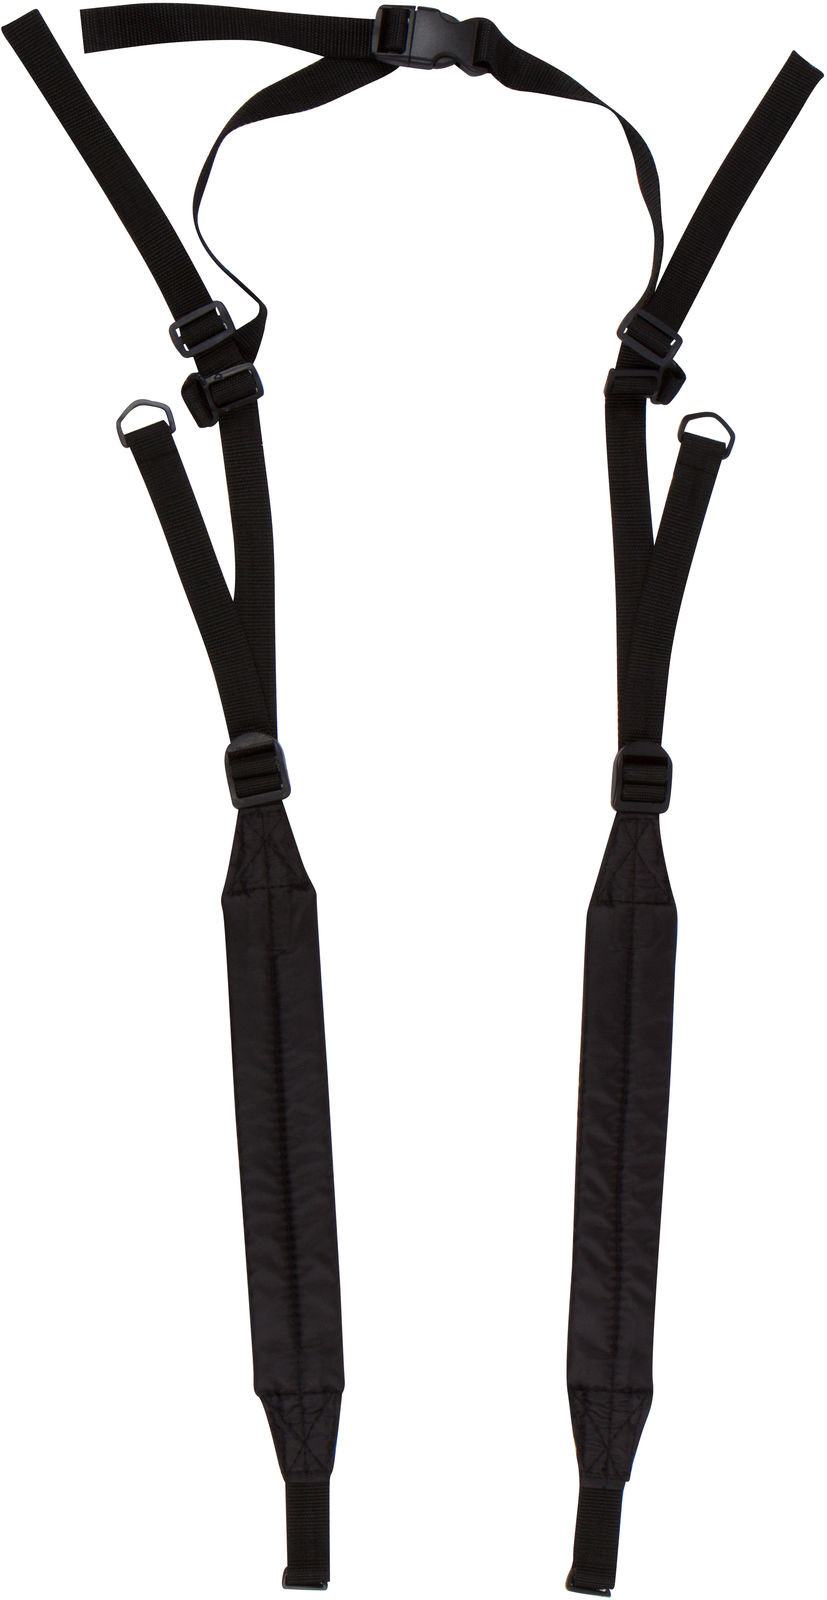 181537 Harness, S1